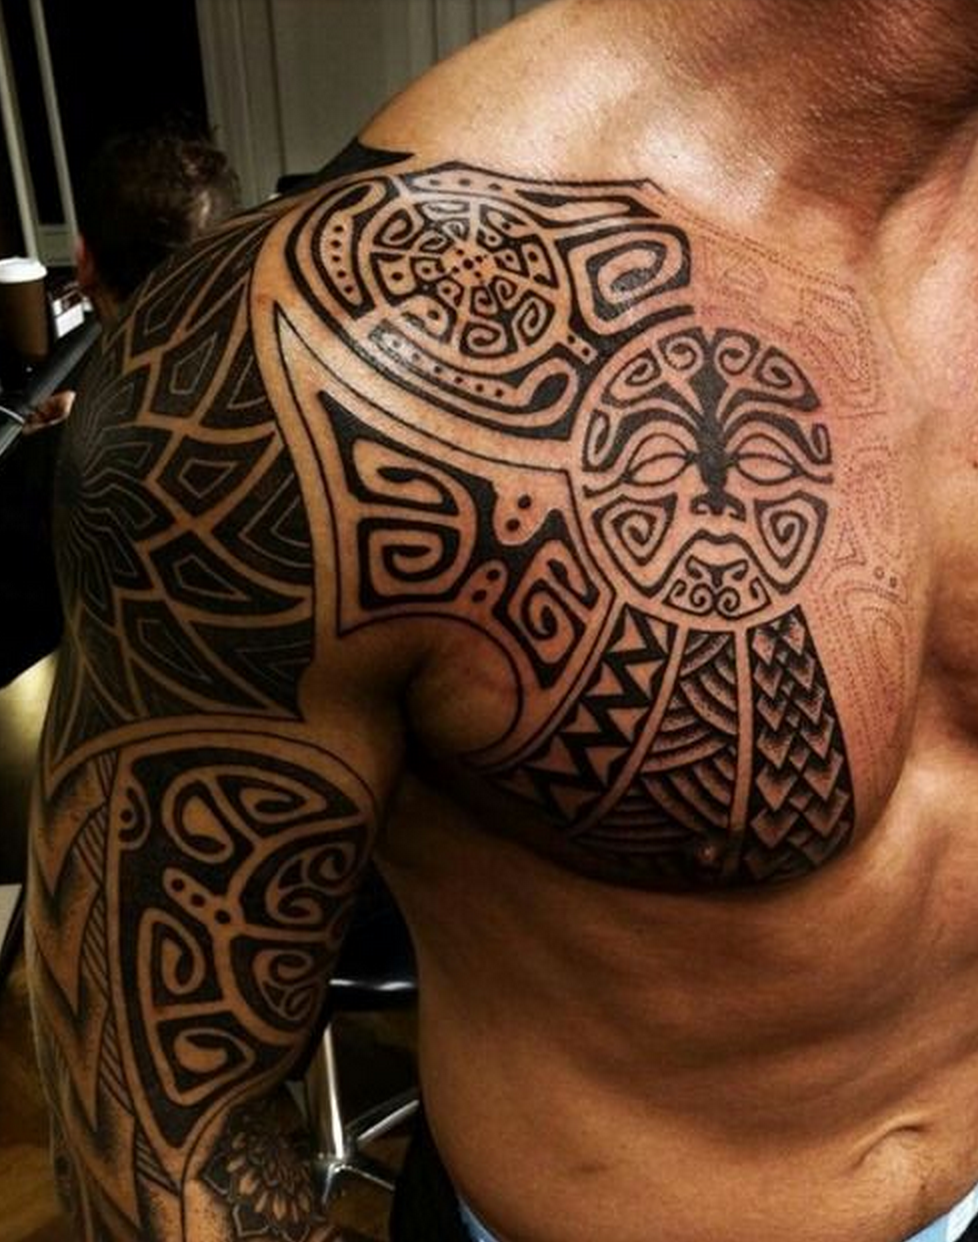 Pin By Nupur Jain On Tattoos Pinterest Tatuaje Maori Tatuajes - Tatuajes-hawaianos